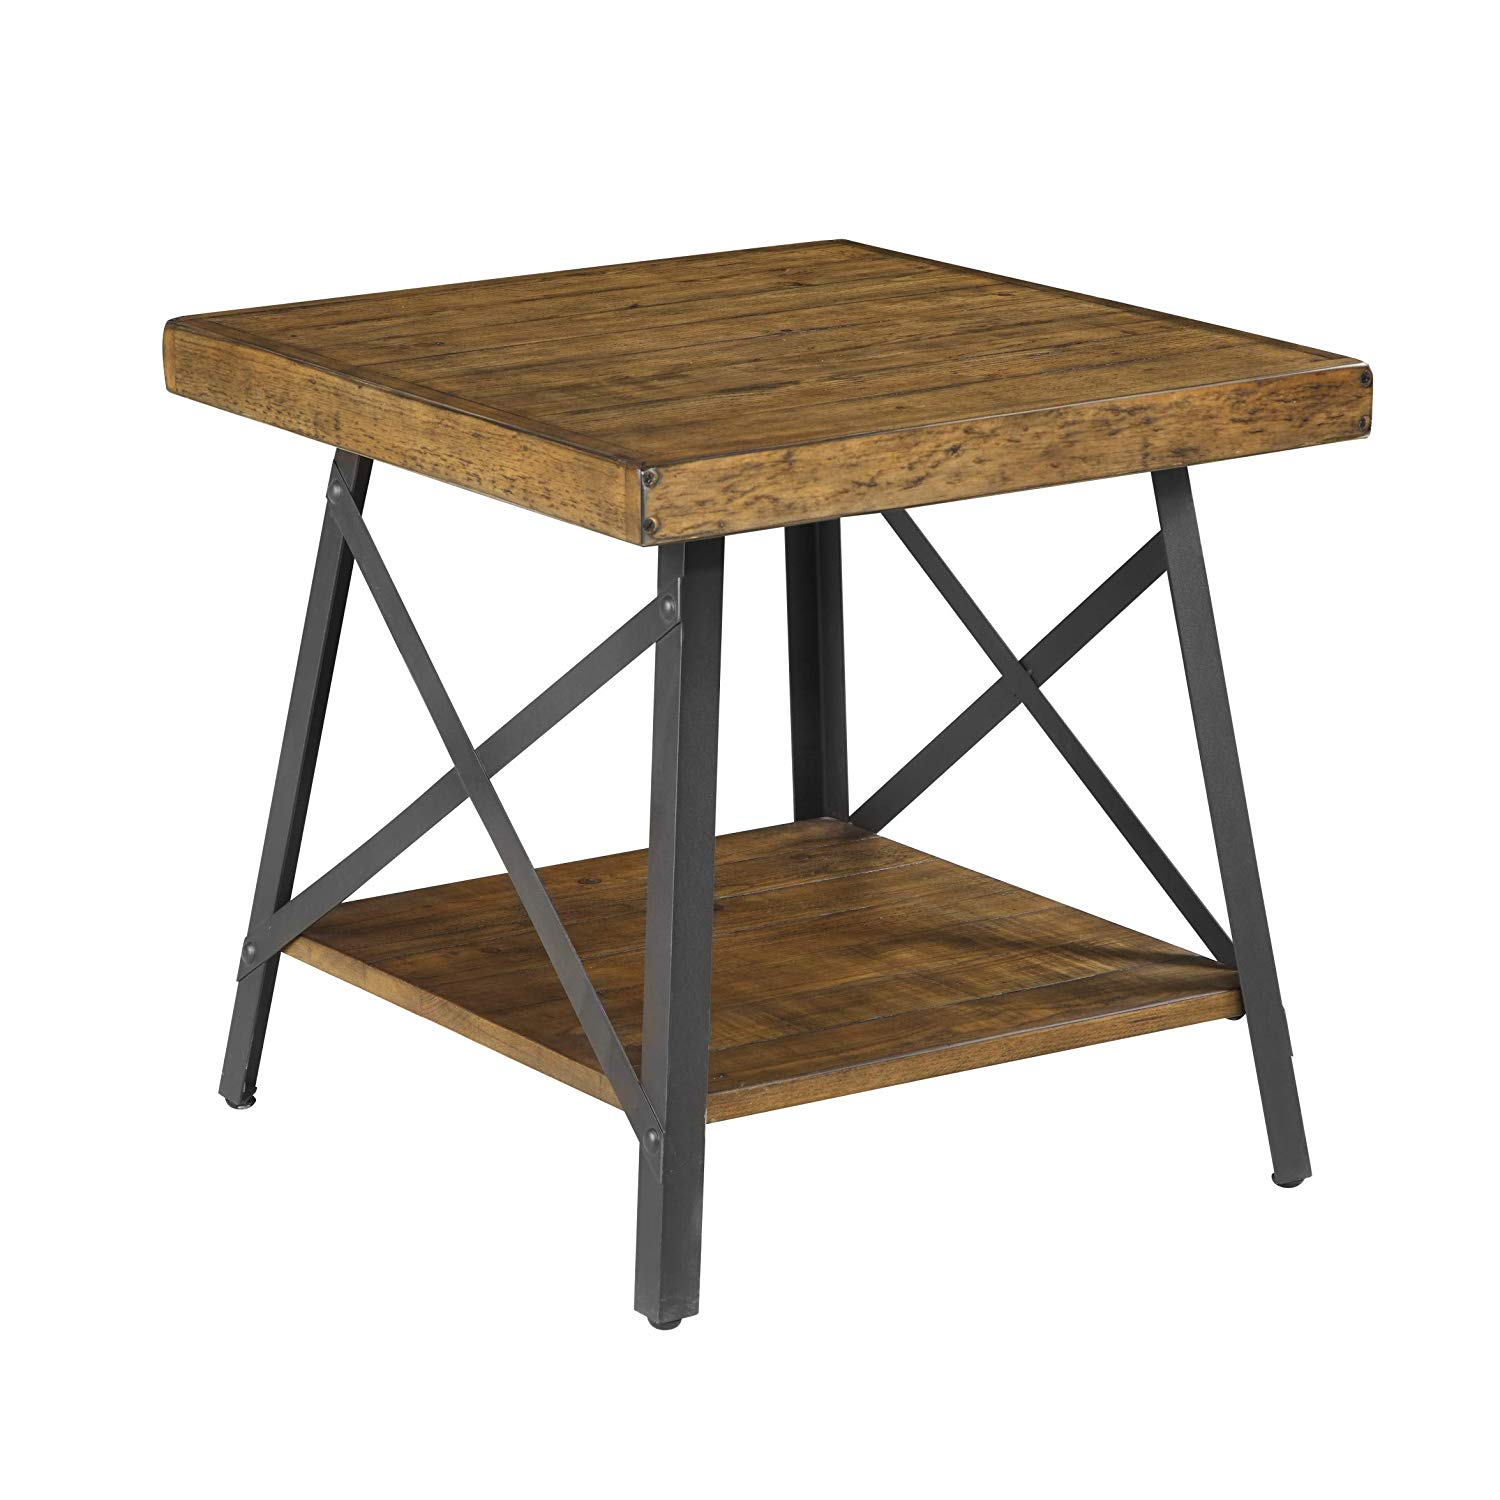 emerald home chandler rustic wood end table with solid reclaimed accent tables top metal base and open storage shelf kitchen dining small outdoor side ikea nightstand modern